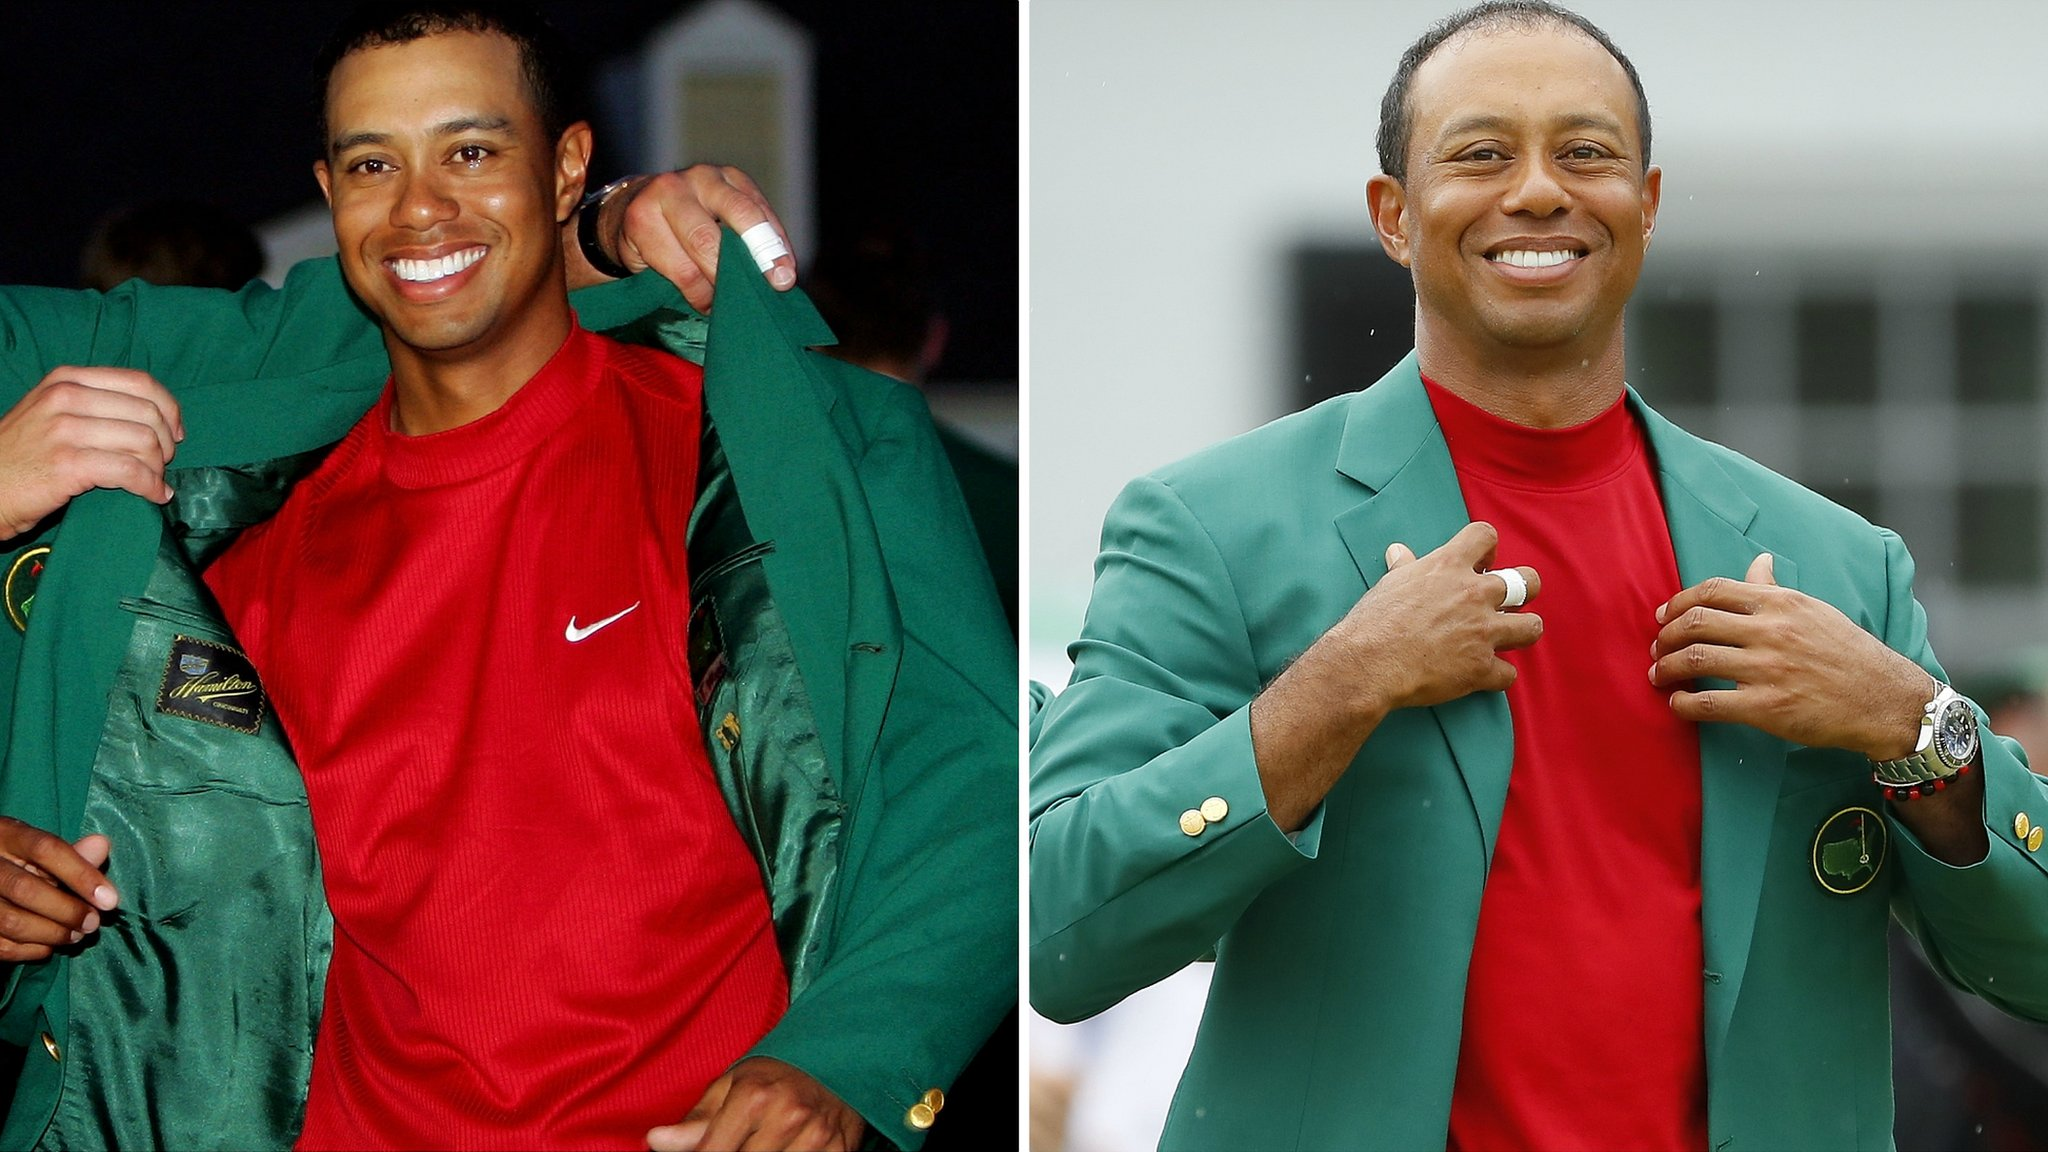 'Greatest comeback story in sport' as Woods wins Masters - do you agree?